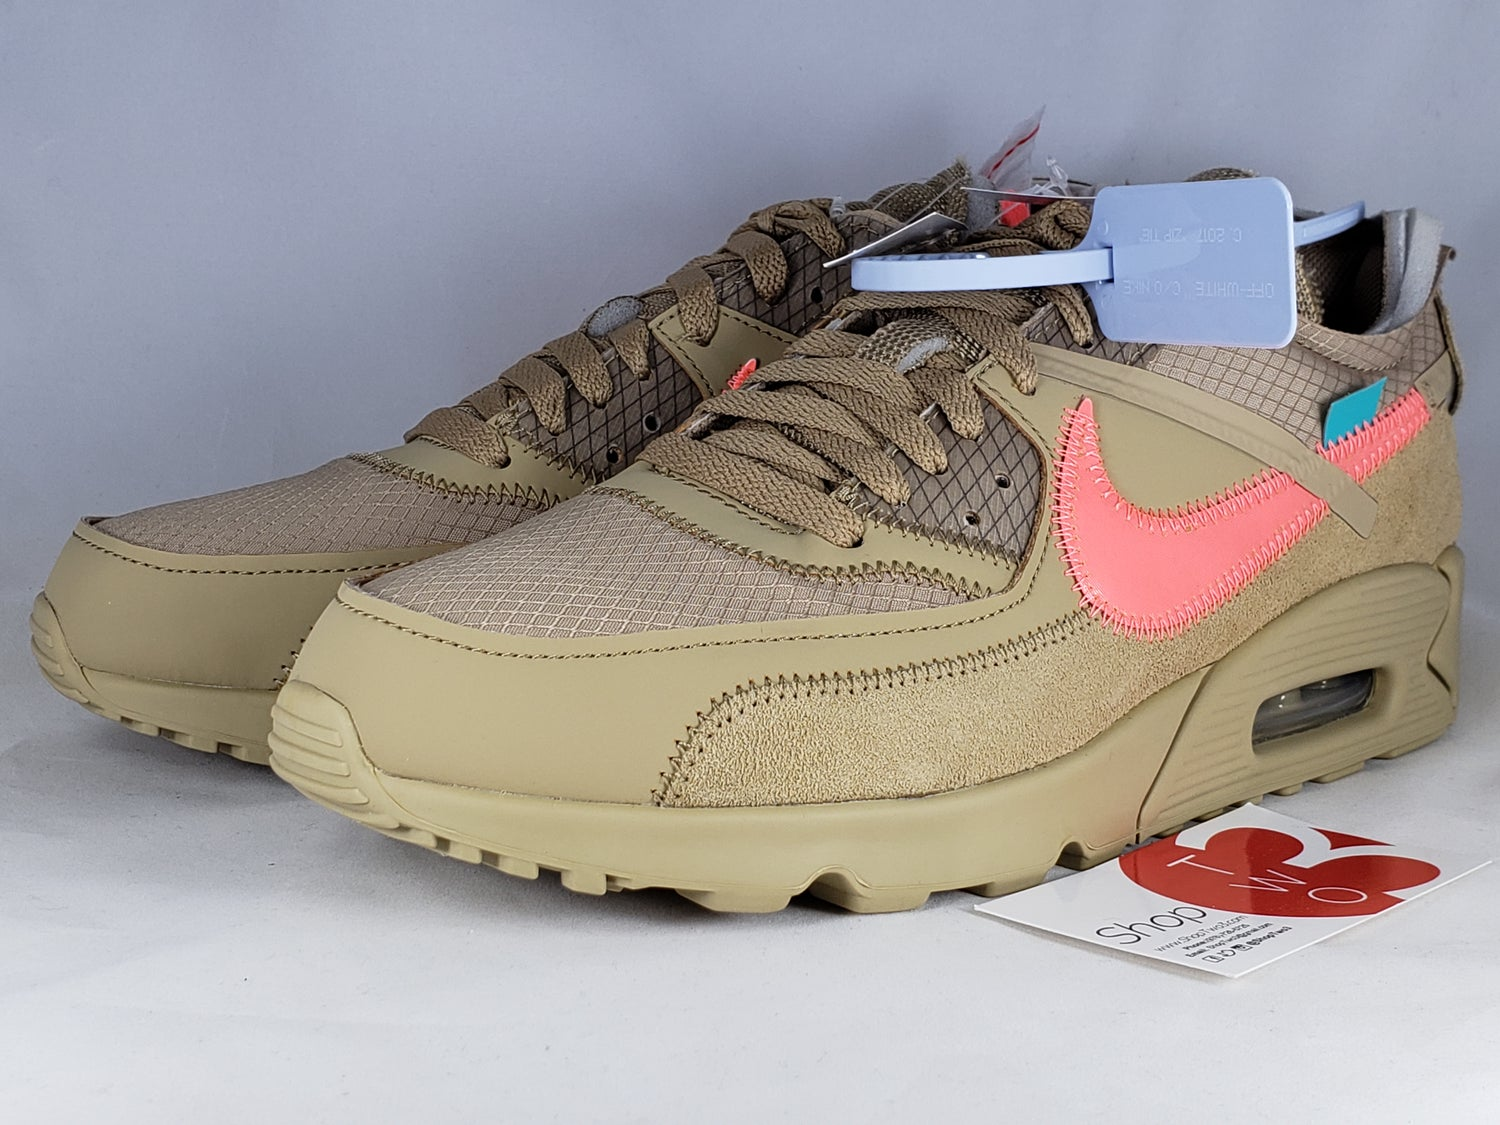 Image of Nike Air Max Off-White Desert Ore